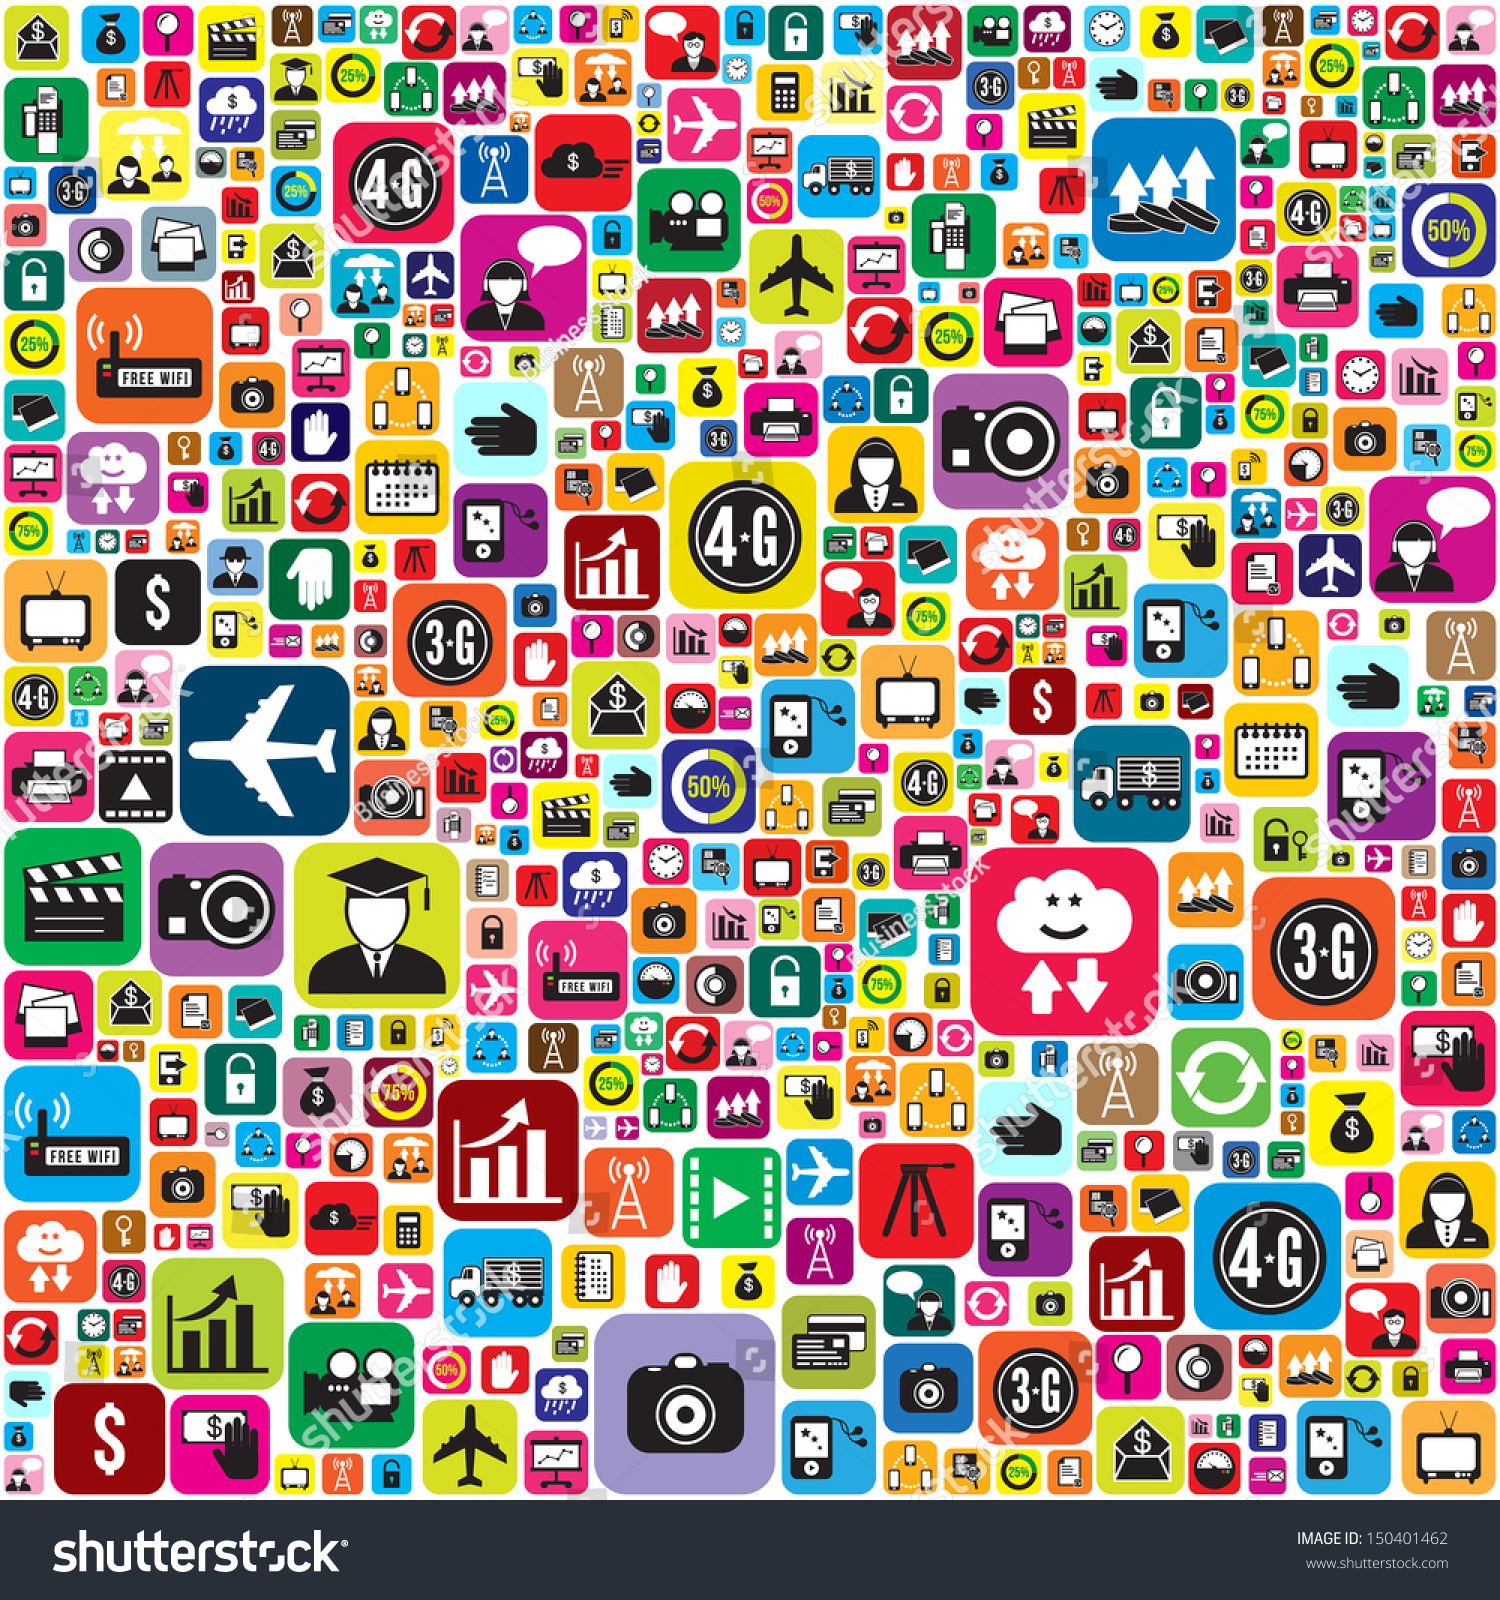 Wallpaper Social Network Icons